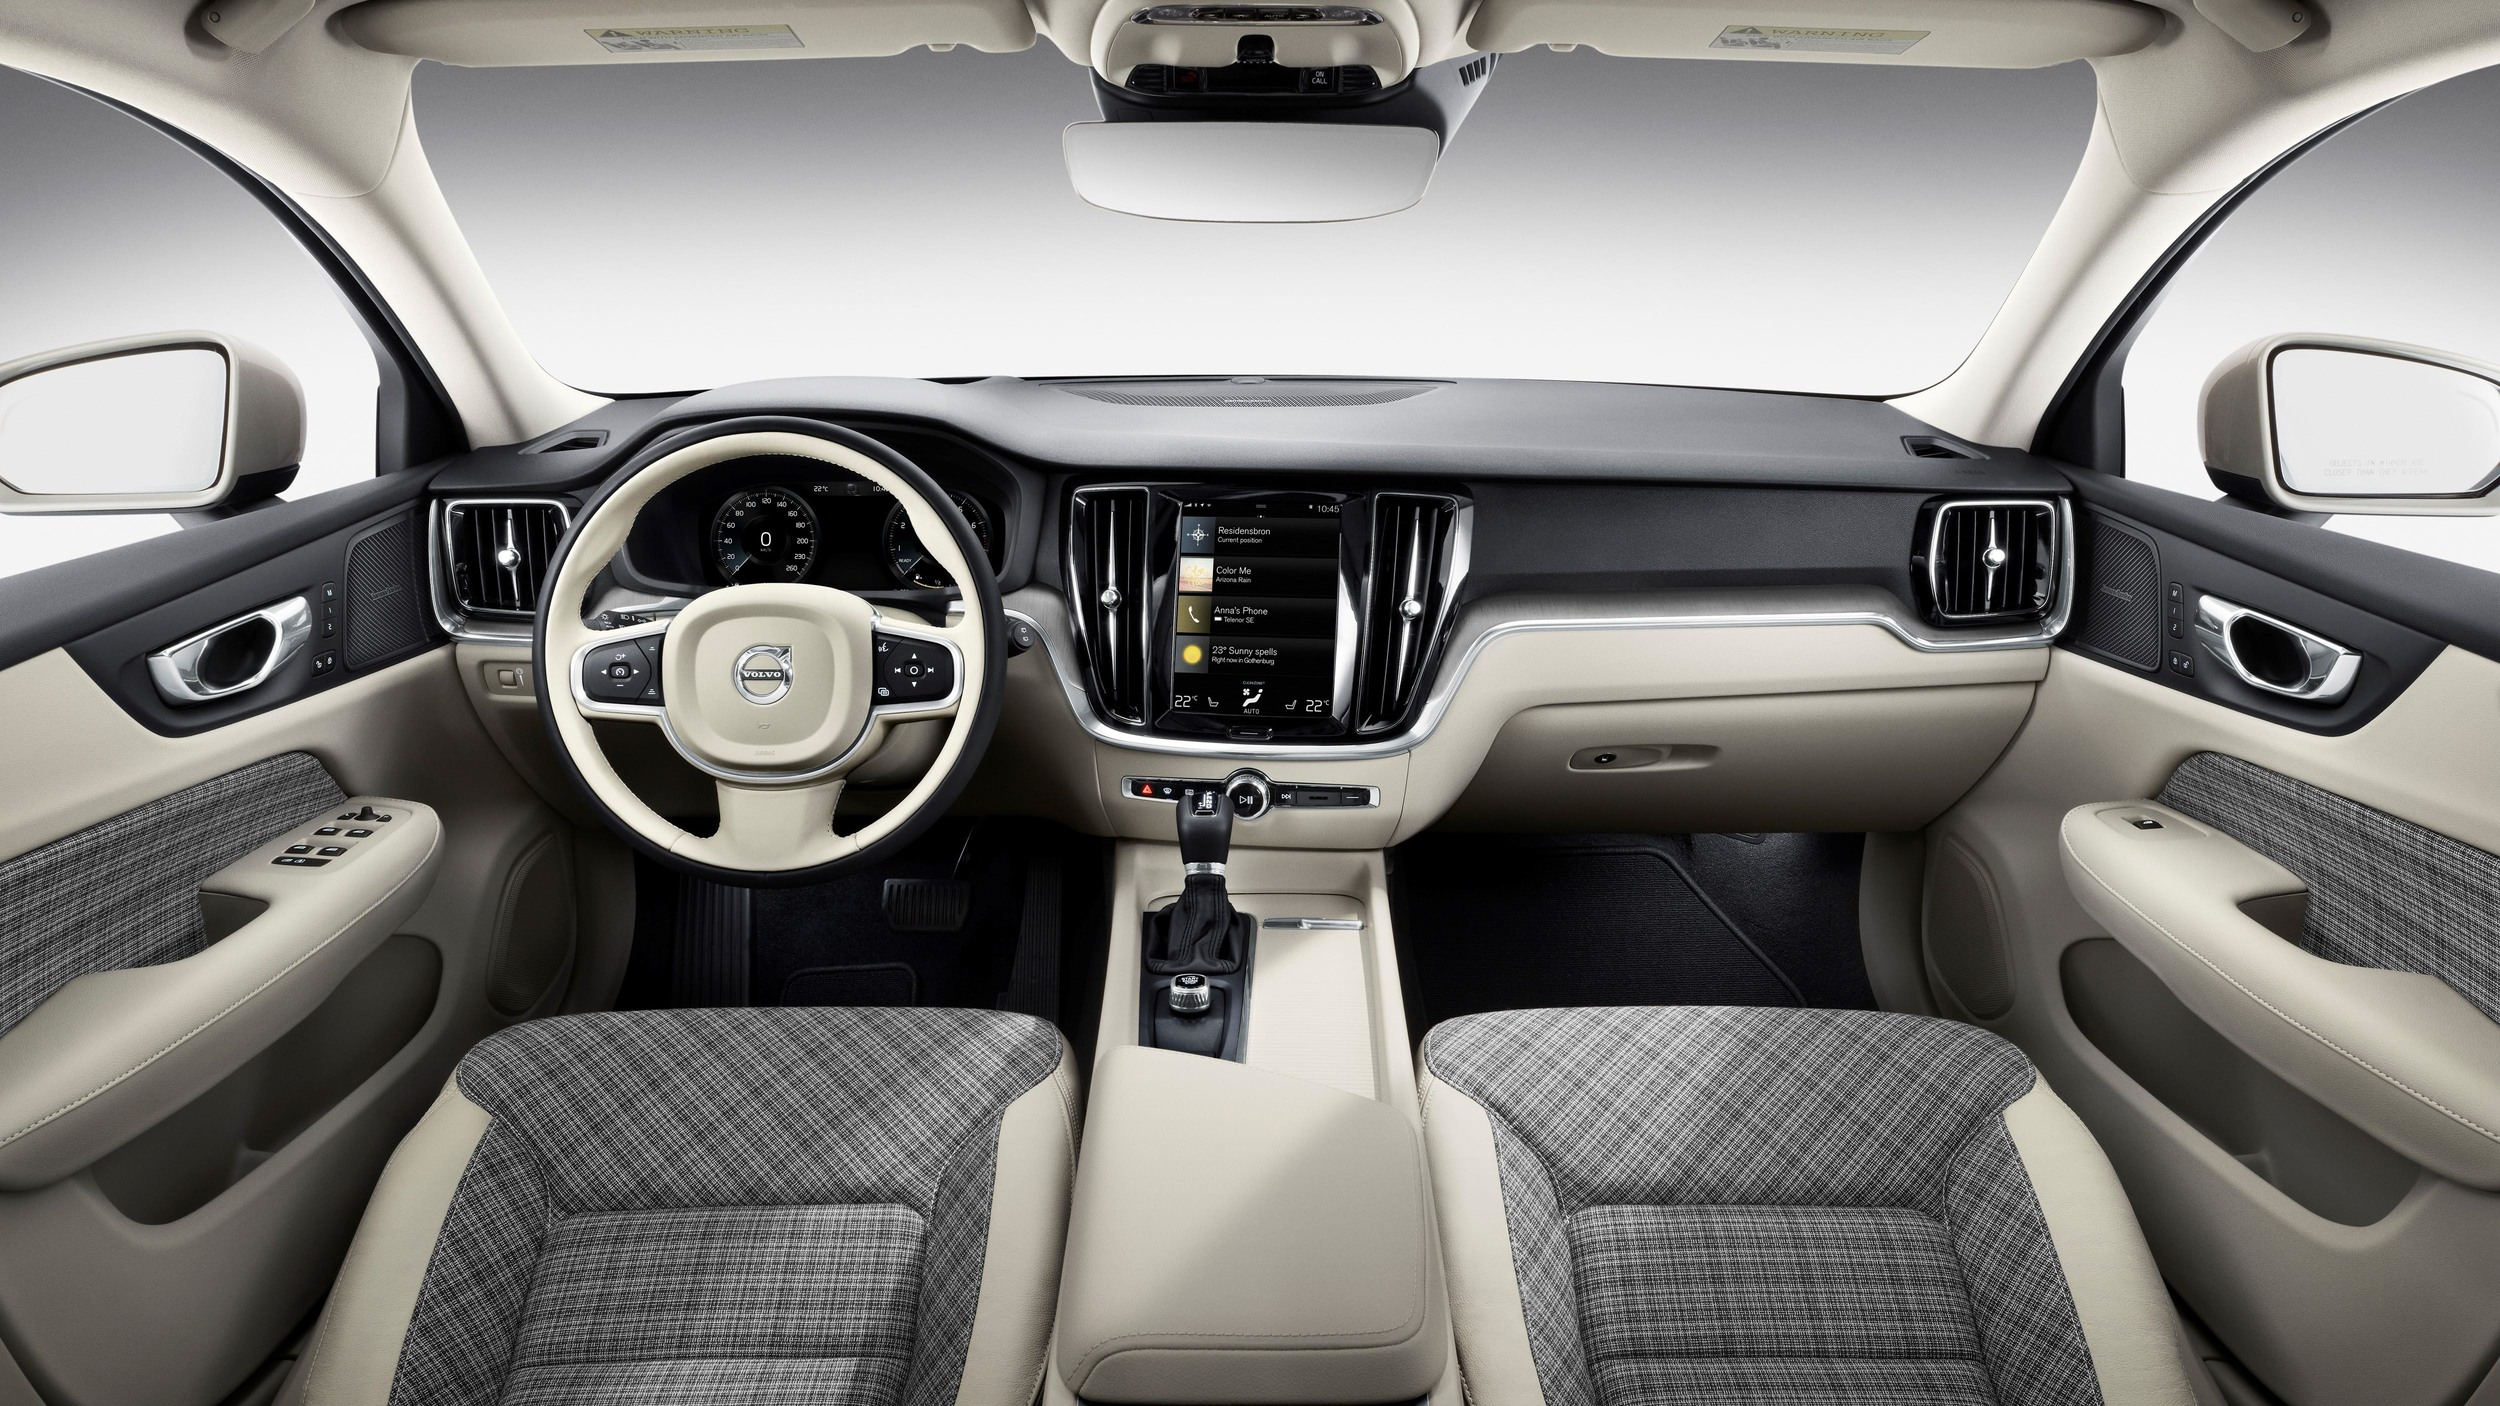 223529-new-volvo-v60-interior-1